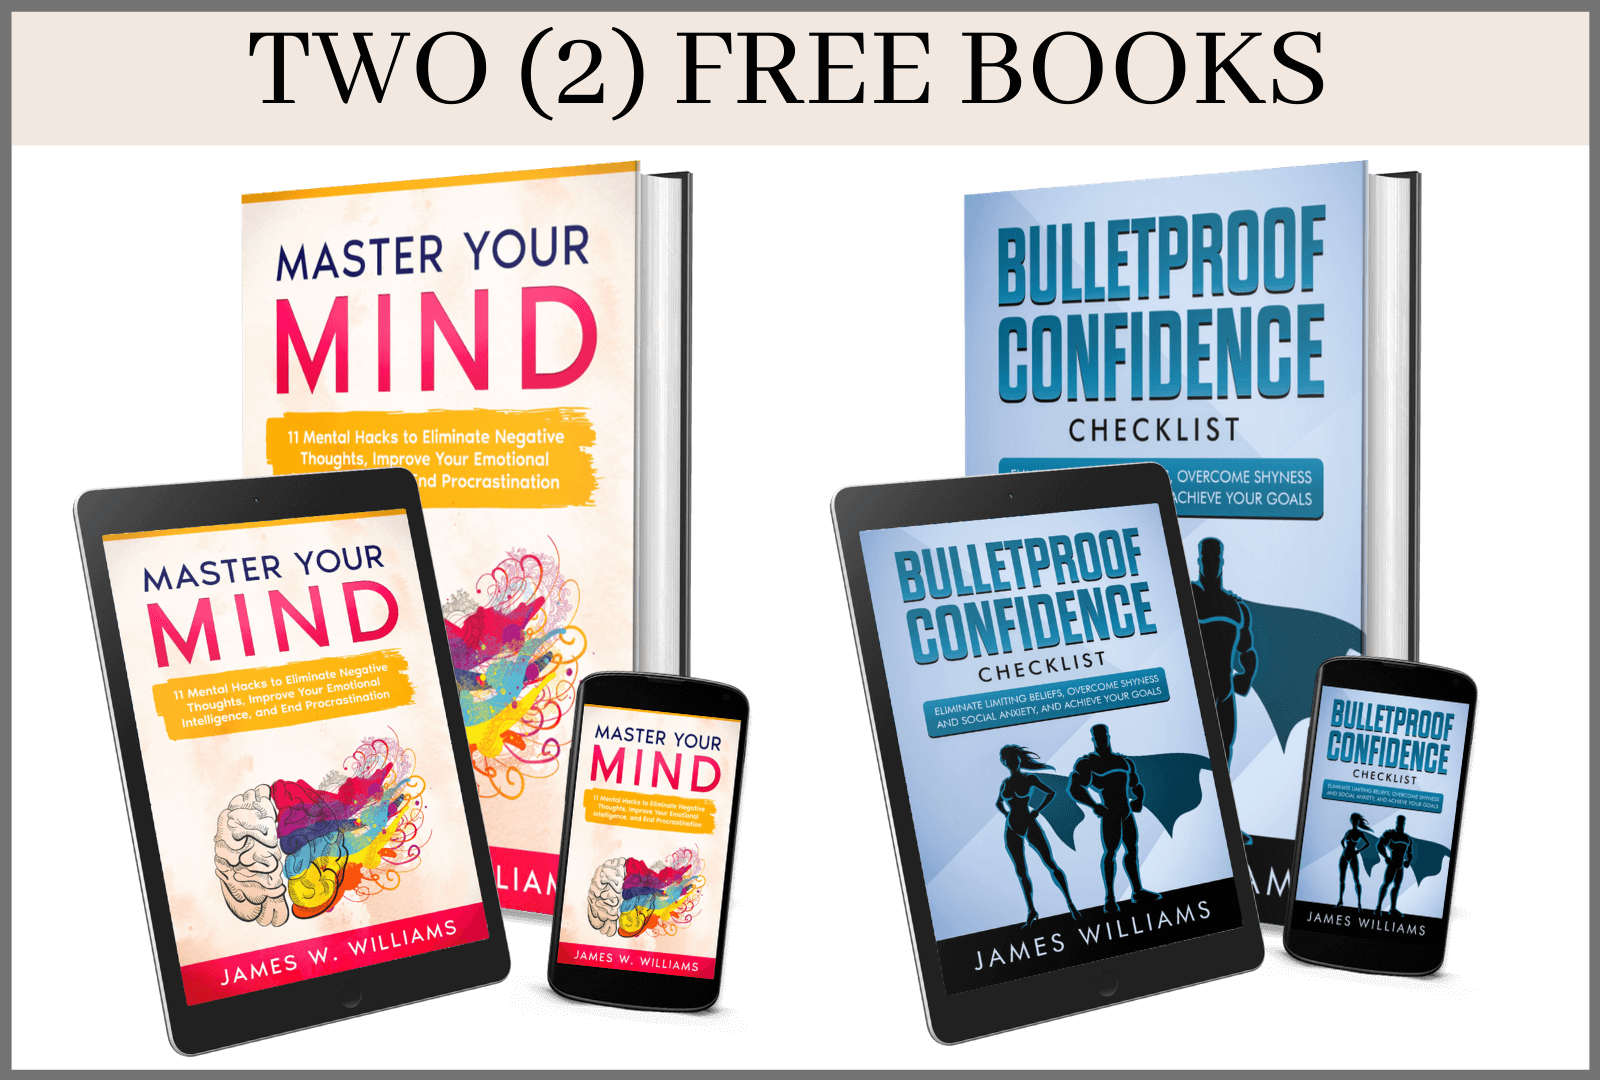 2 free bonus books the art of mastery